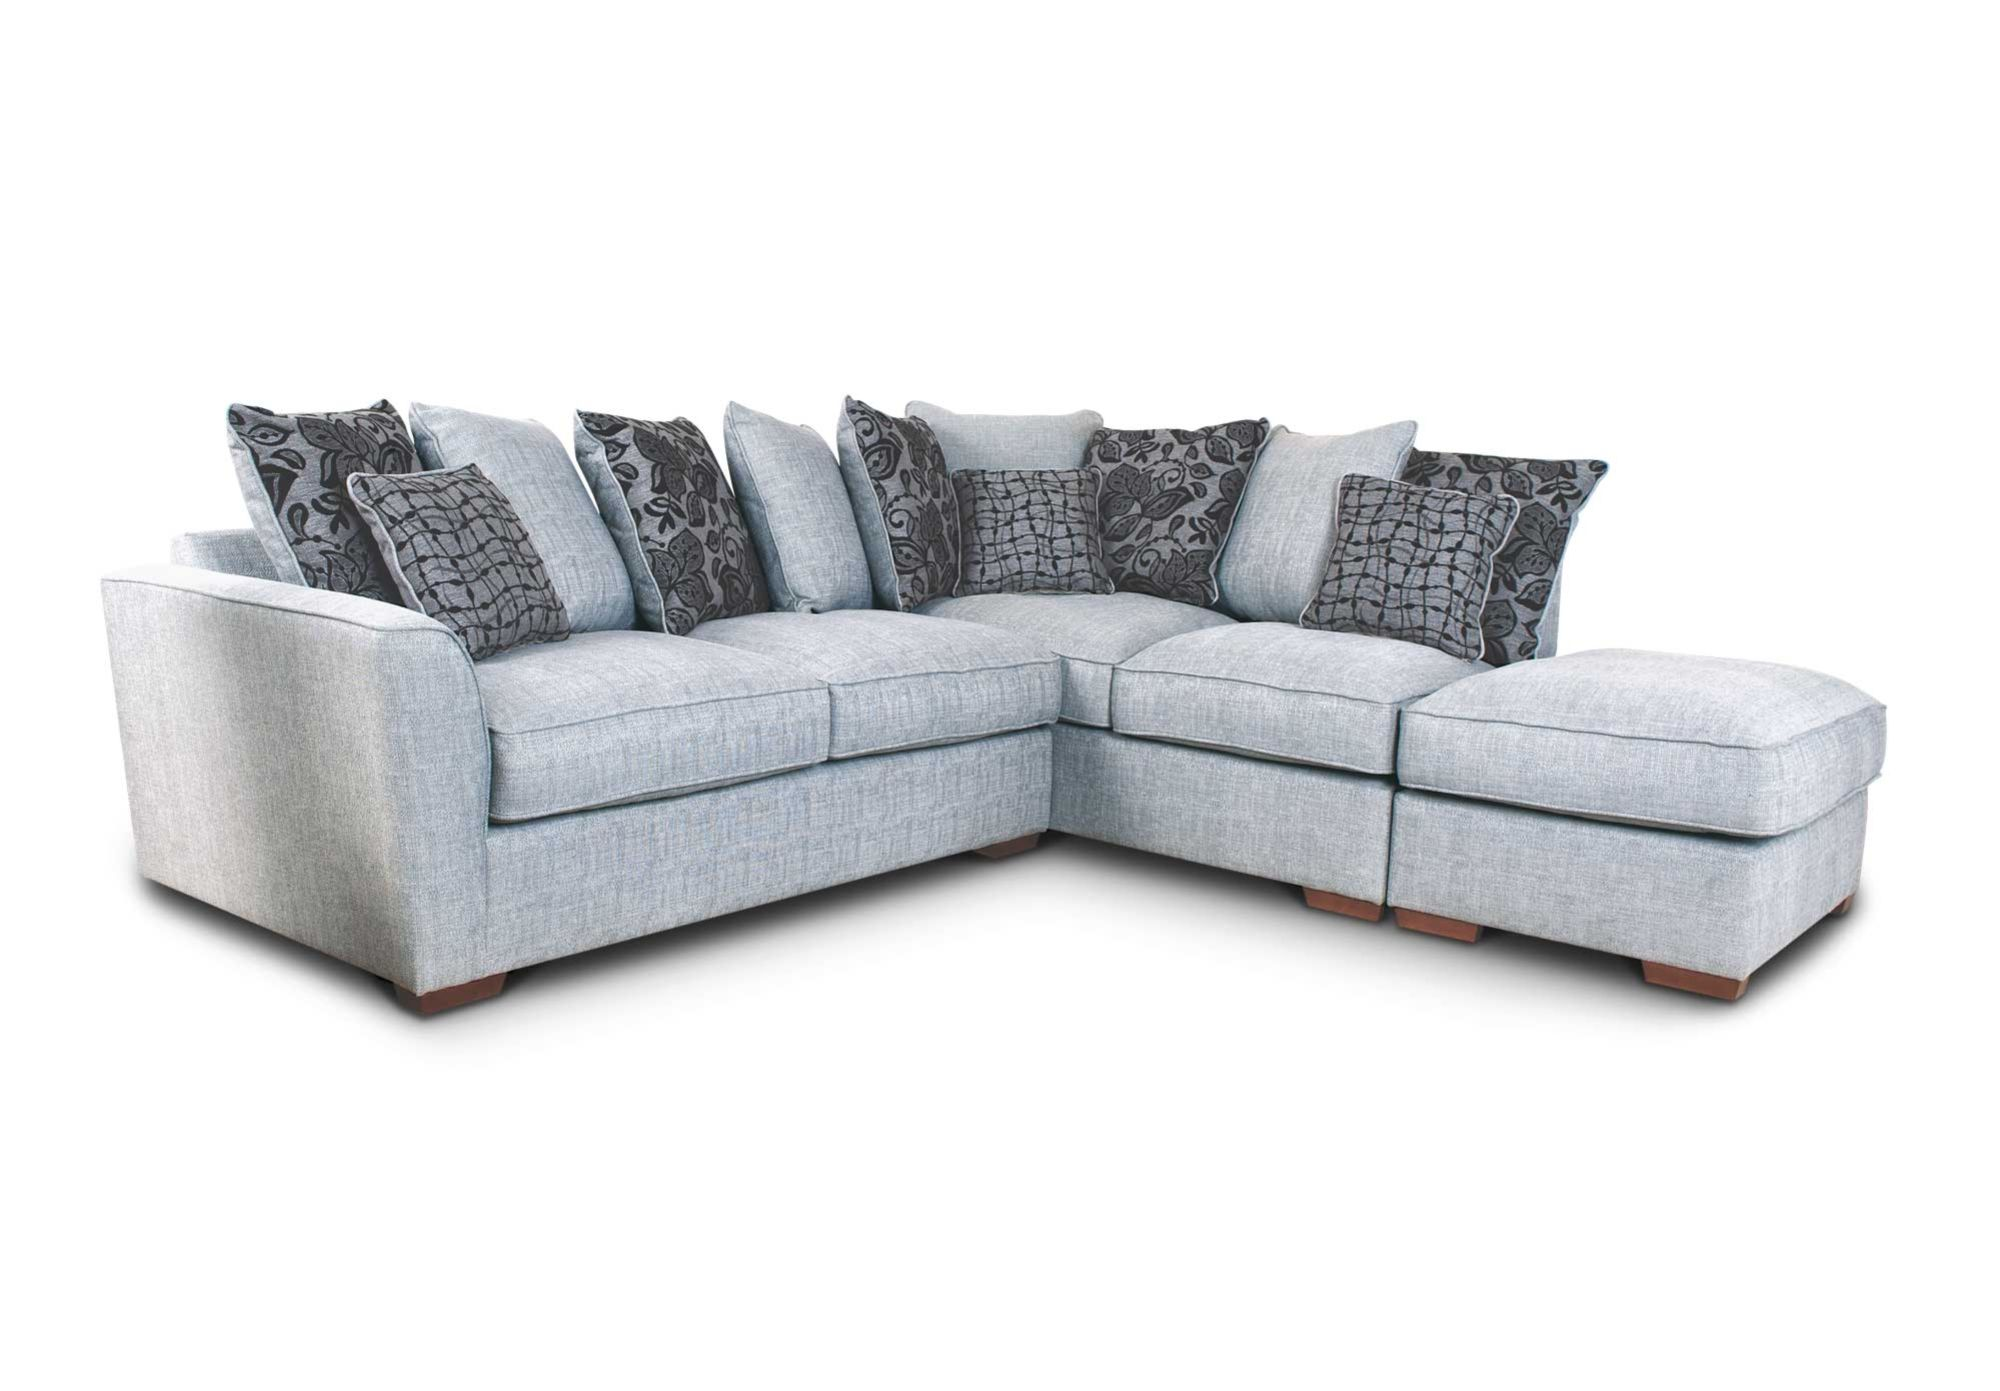 RHF scatter back chaise sofa with footstool - Fable - Living Room ...